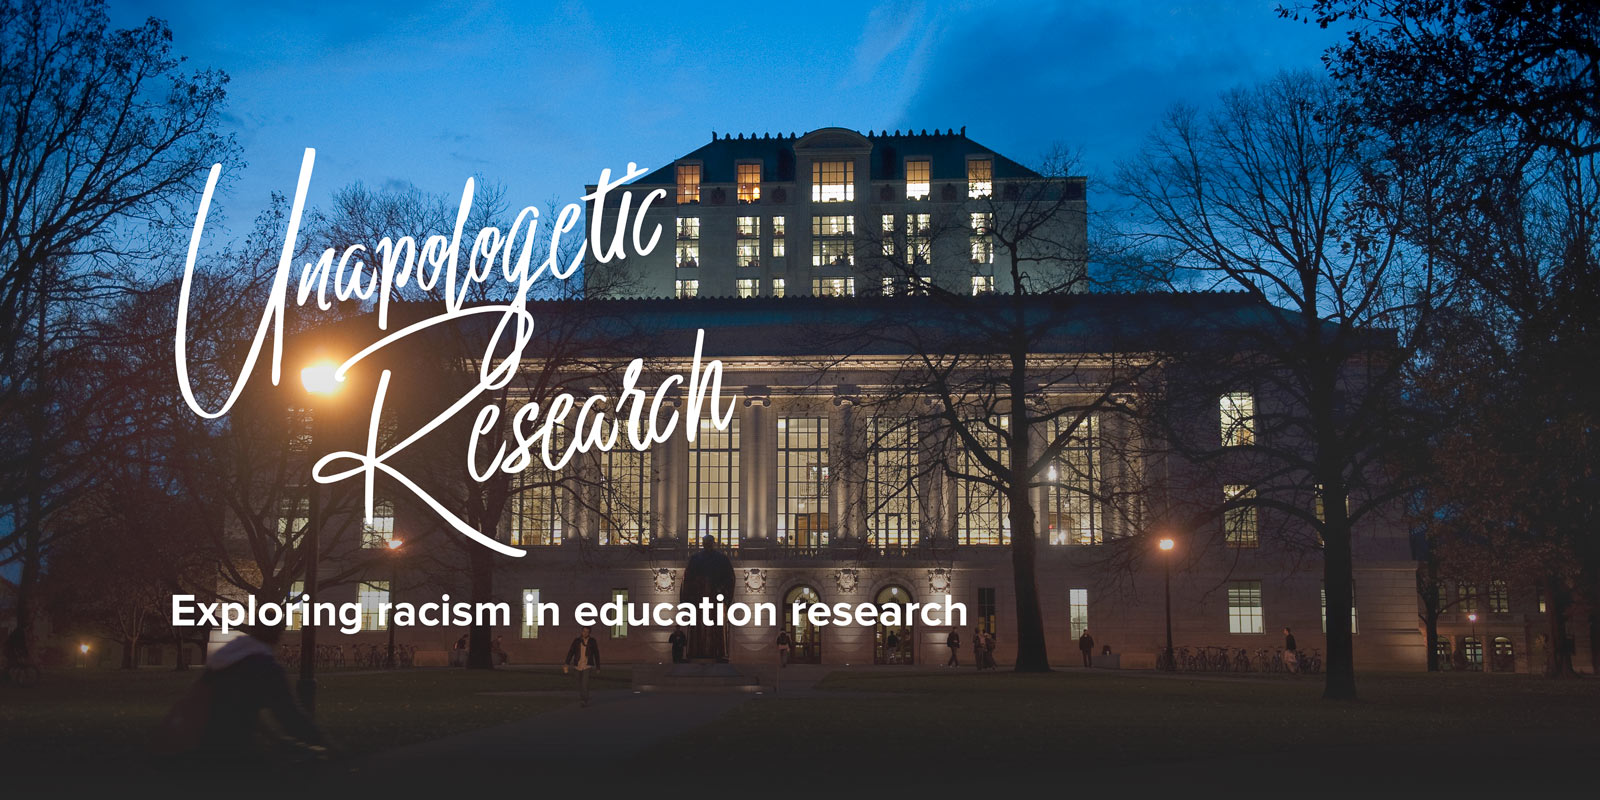 Unapologetic research; exploring racism in education research